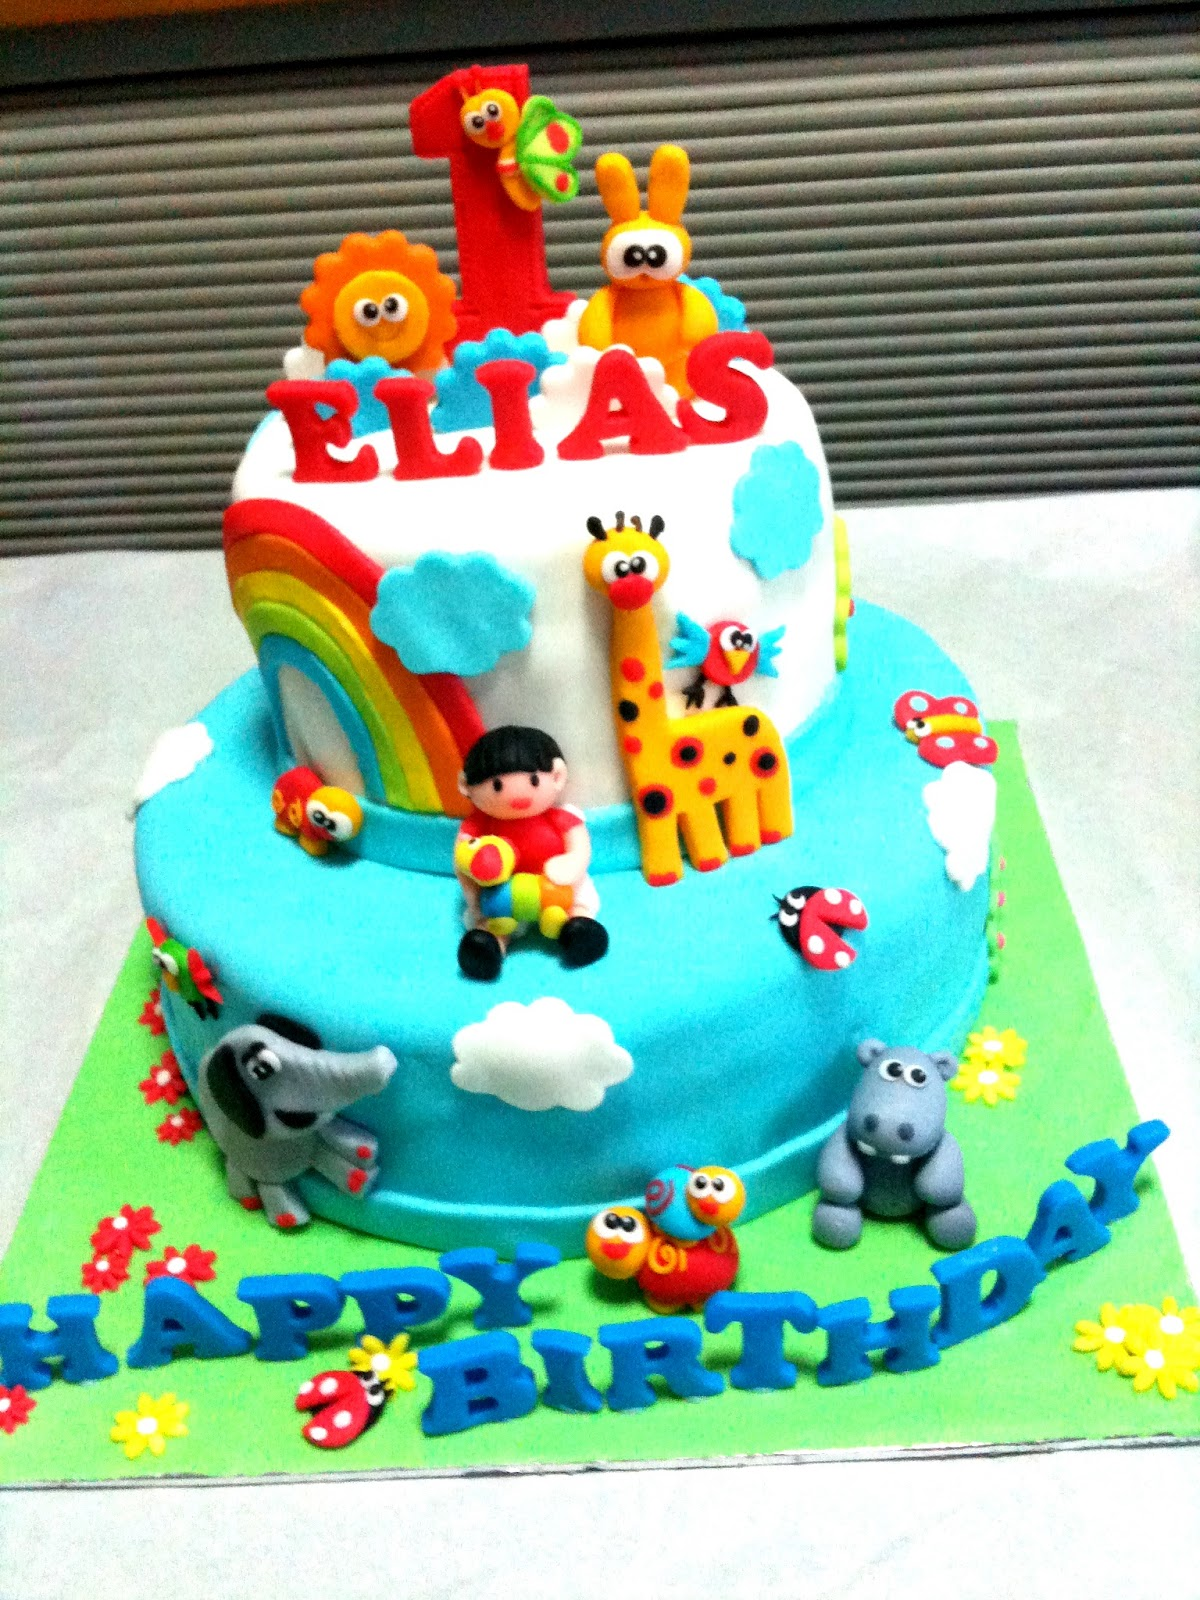 Oven Creations: Happy 1st Birthday Elias